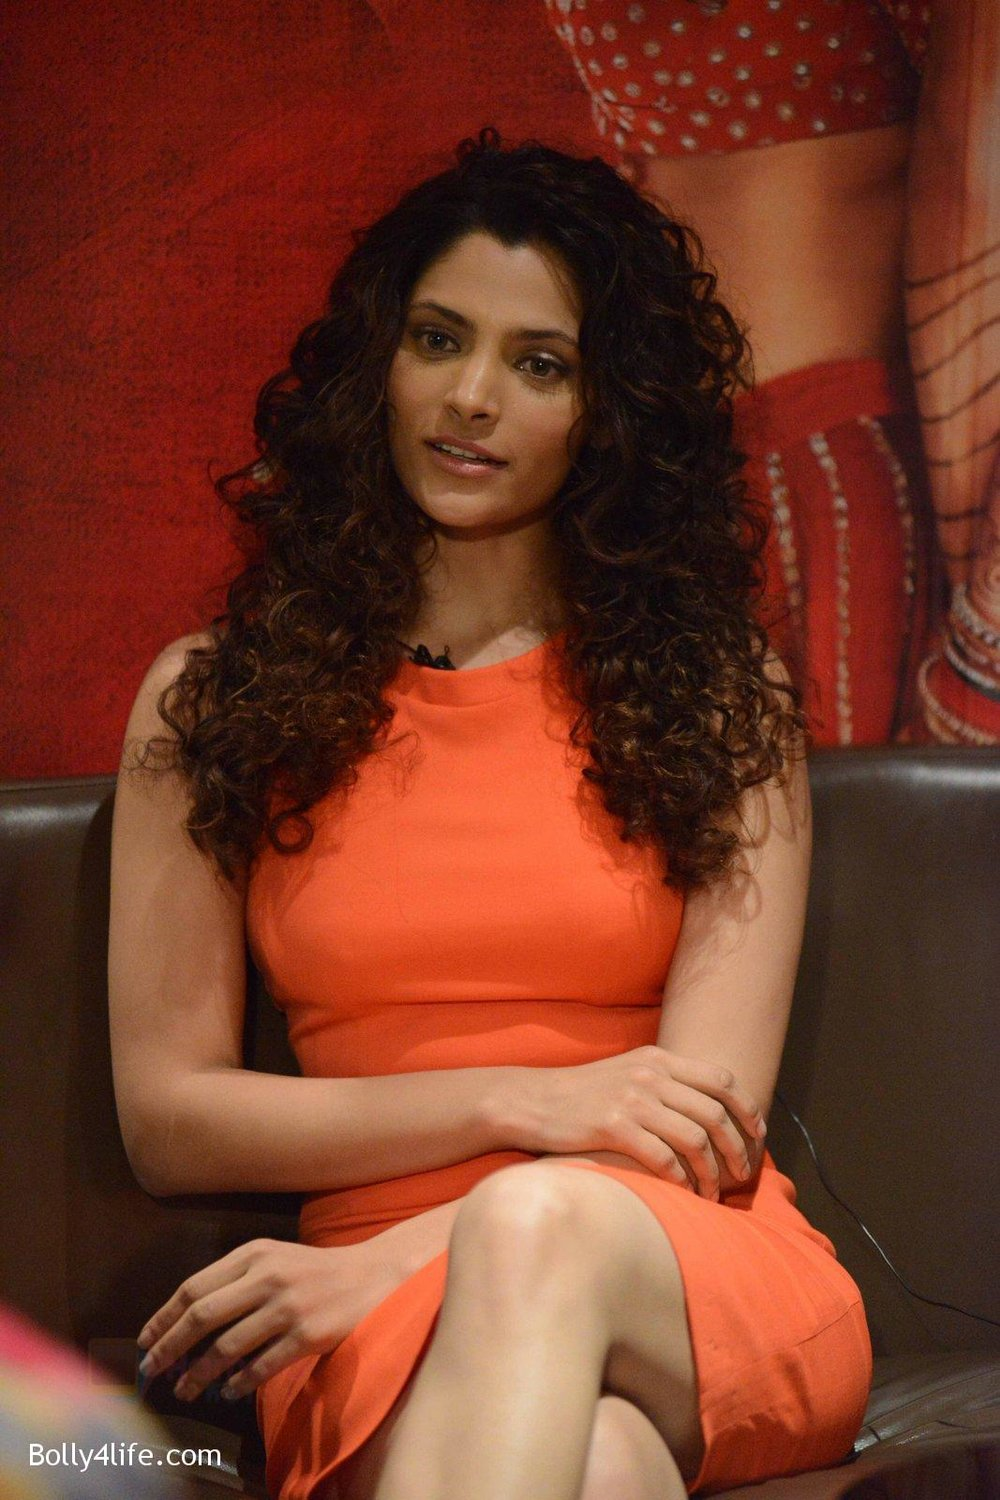 Saiyami-Kher-at-Mirzya-press-meet-in-Delhi-on-3rd-Oct-2016-94.jpg